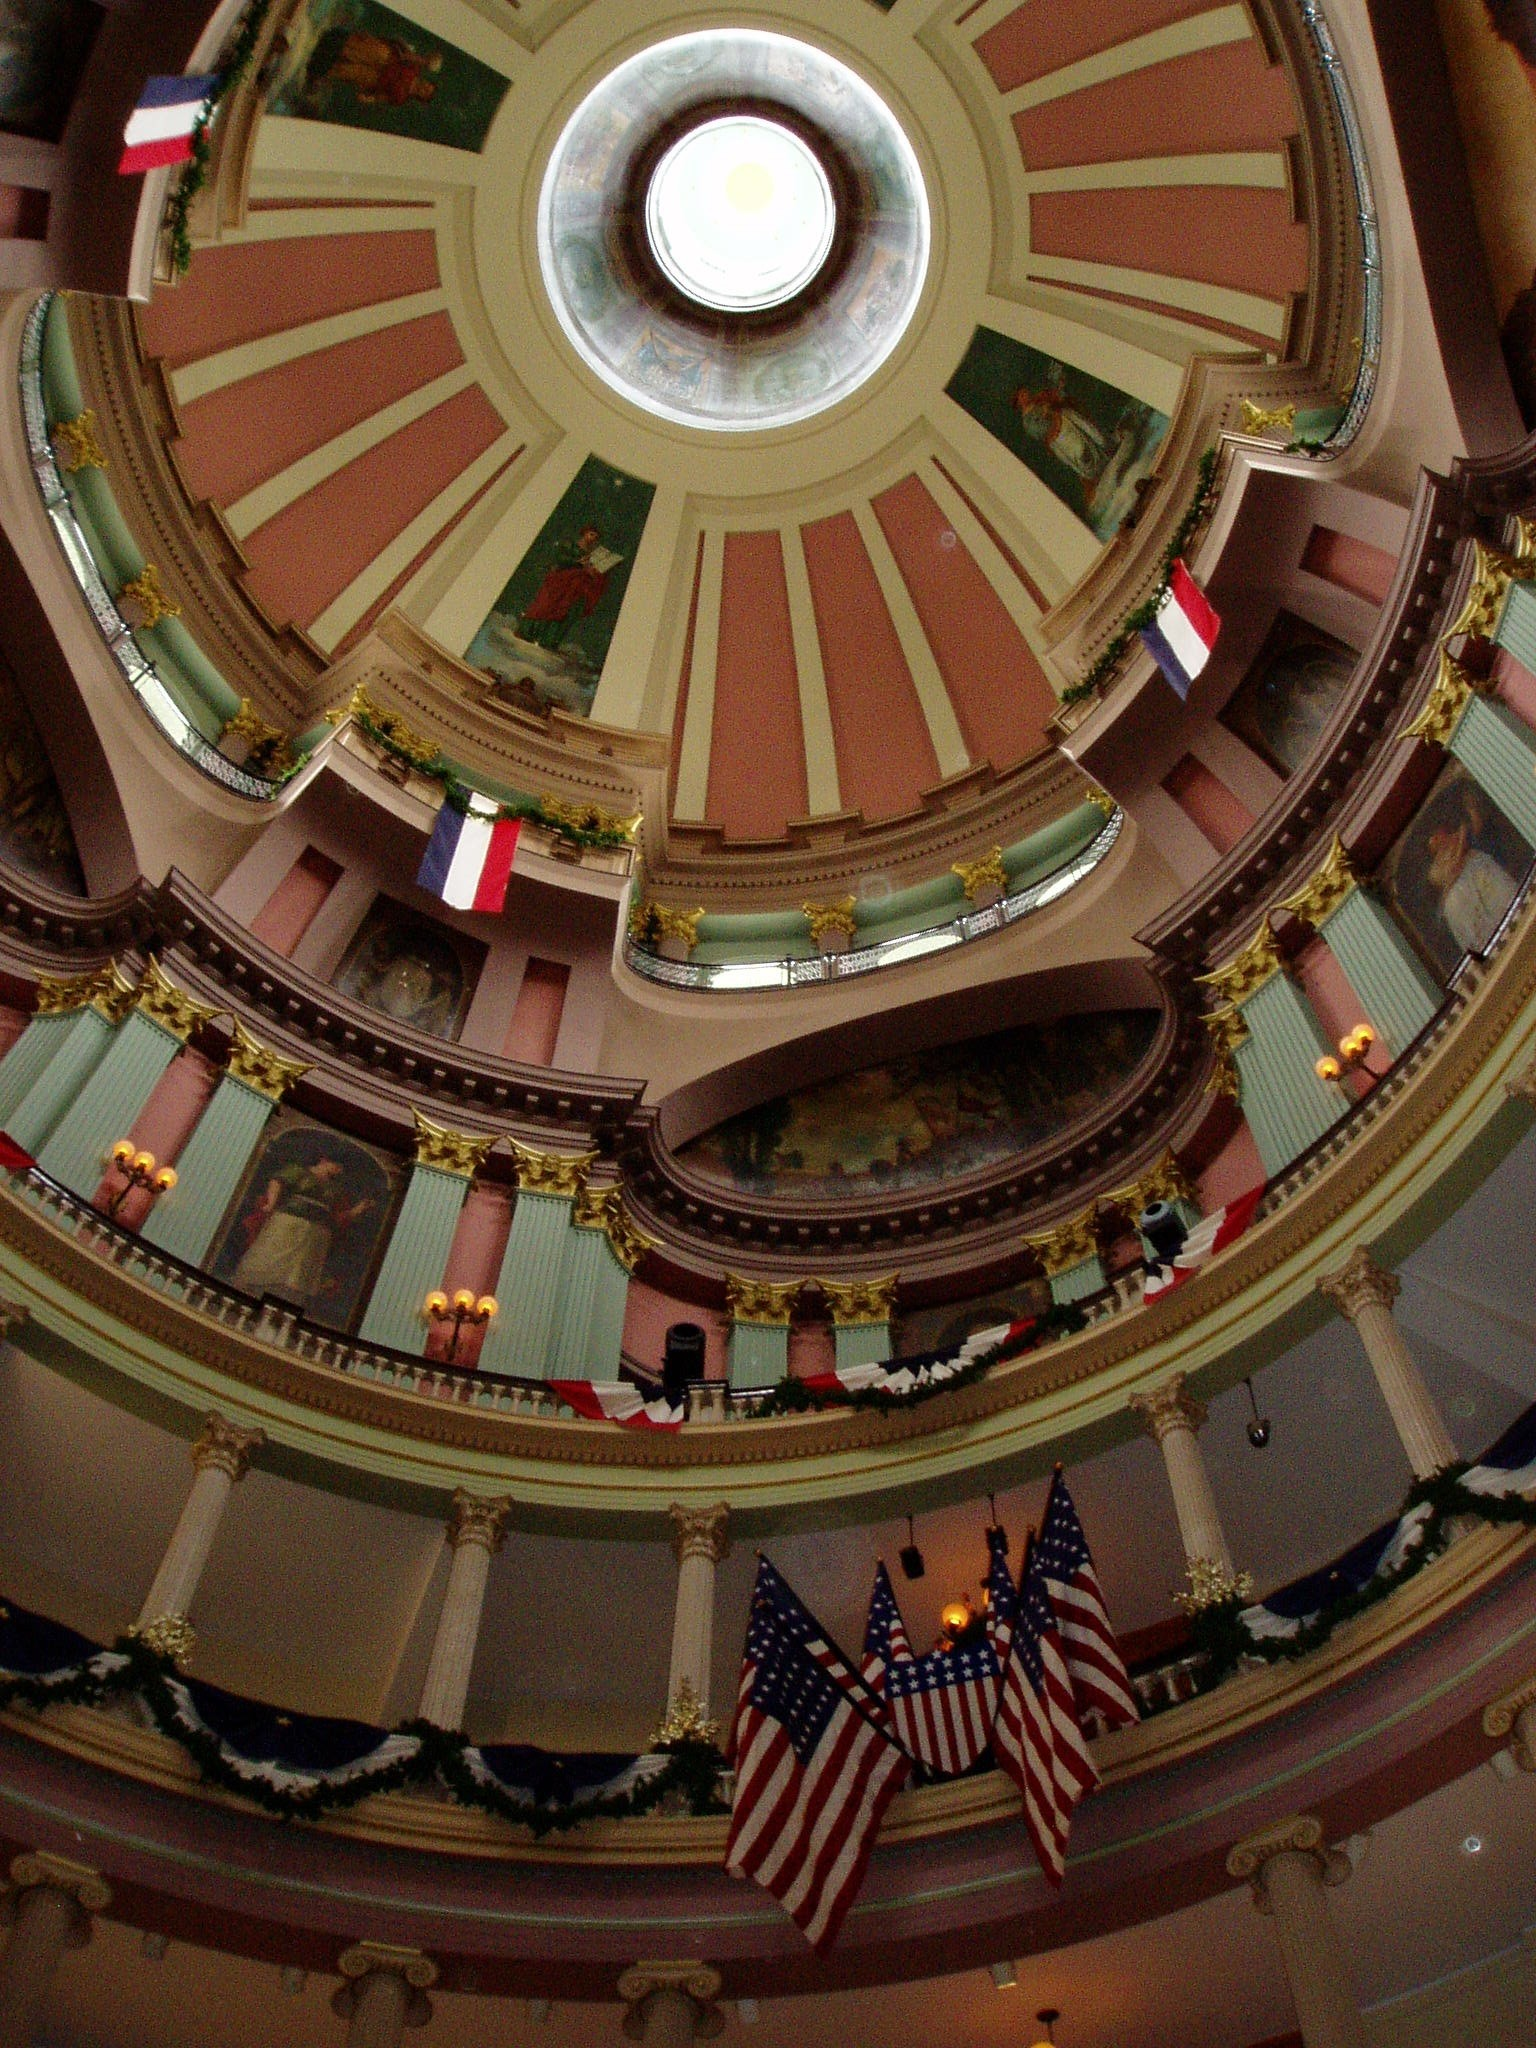 Old Courthouse Rotunda, St. Louis, site of Dred and Harriet Scott's petitions and Virginia Minor's efforts to vote; display of American flags and Carl Wimar's murals